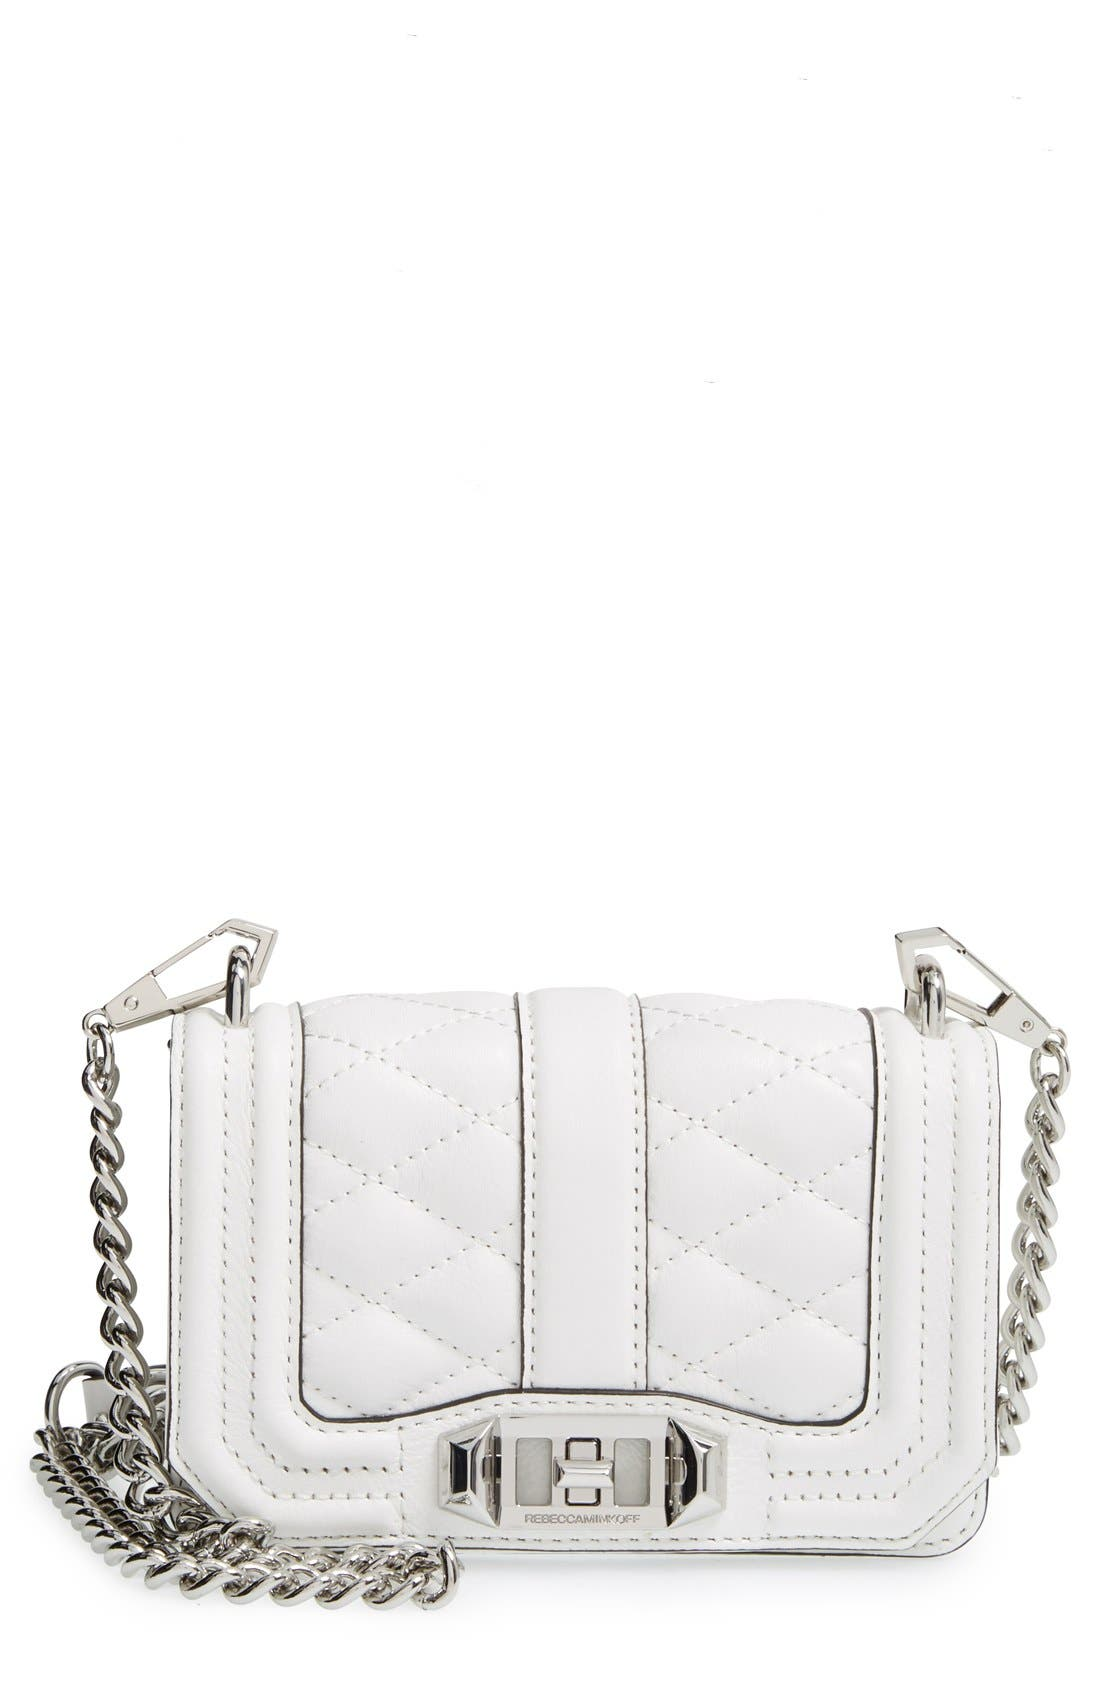 Alternate Image 1 Selected - Rebecca Minkoff 'Mini Love' Convertible Crossbody Bag